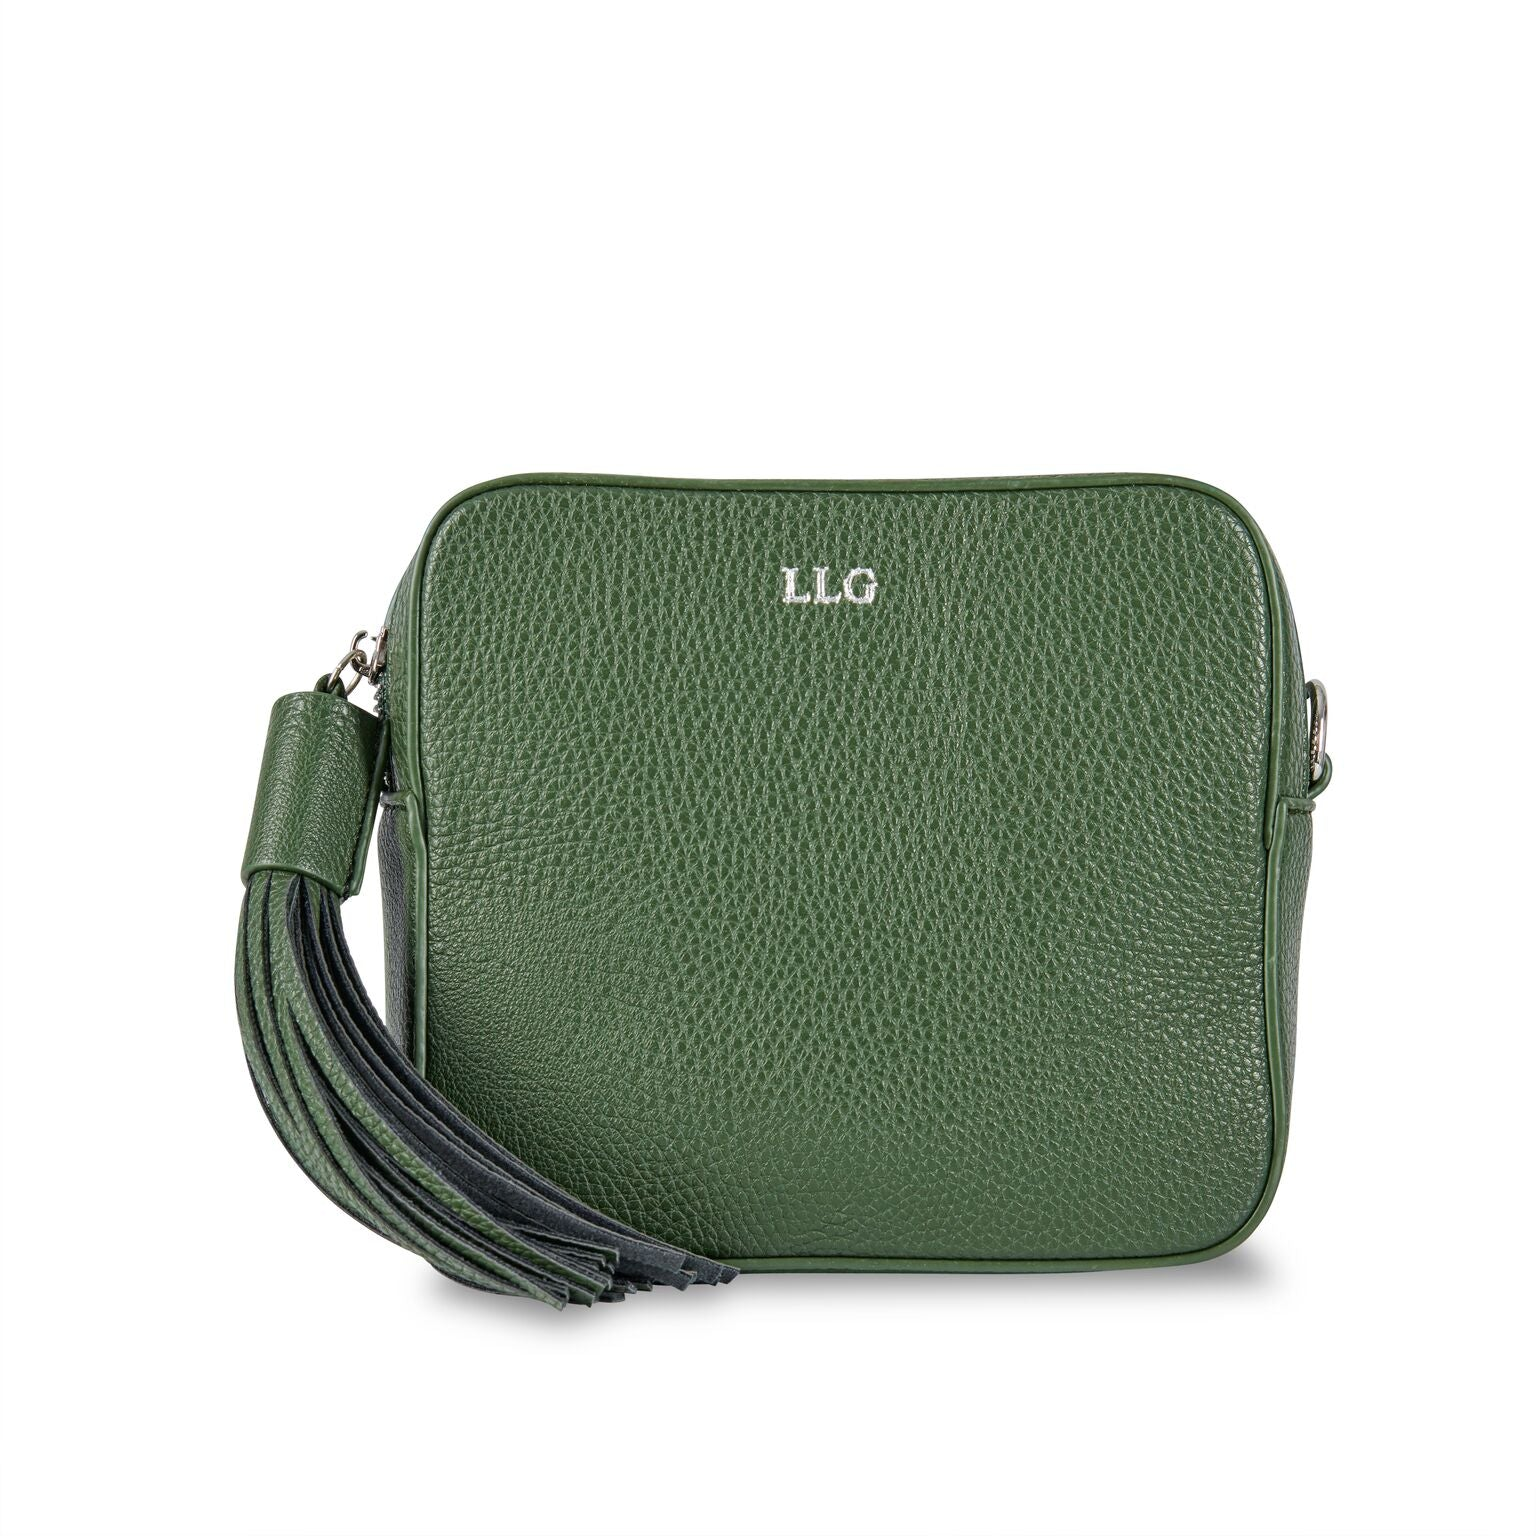 Olive Green Vegan Leather Cross Body Bag